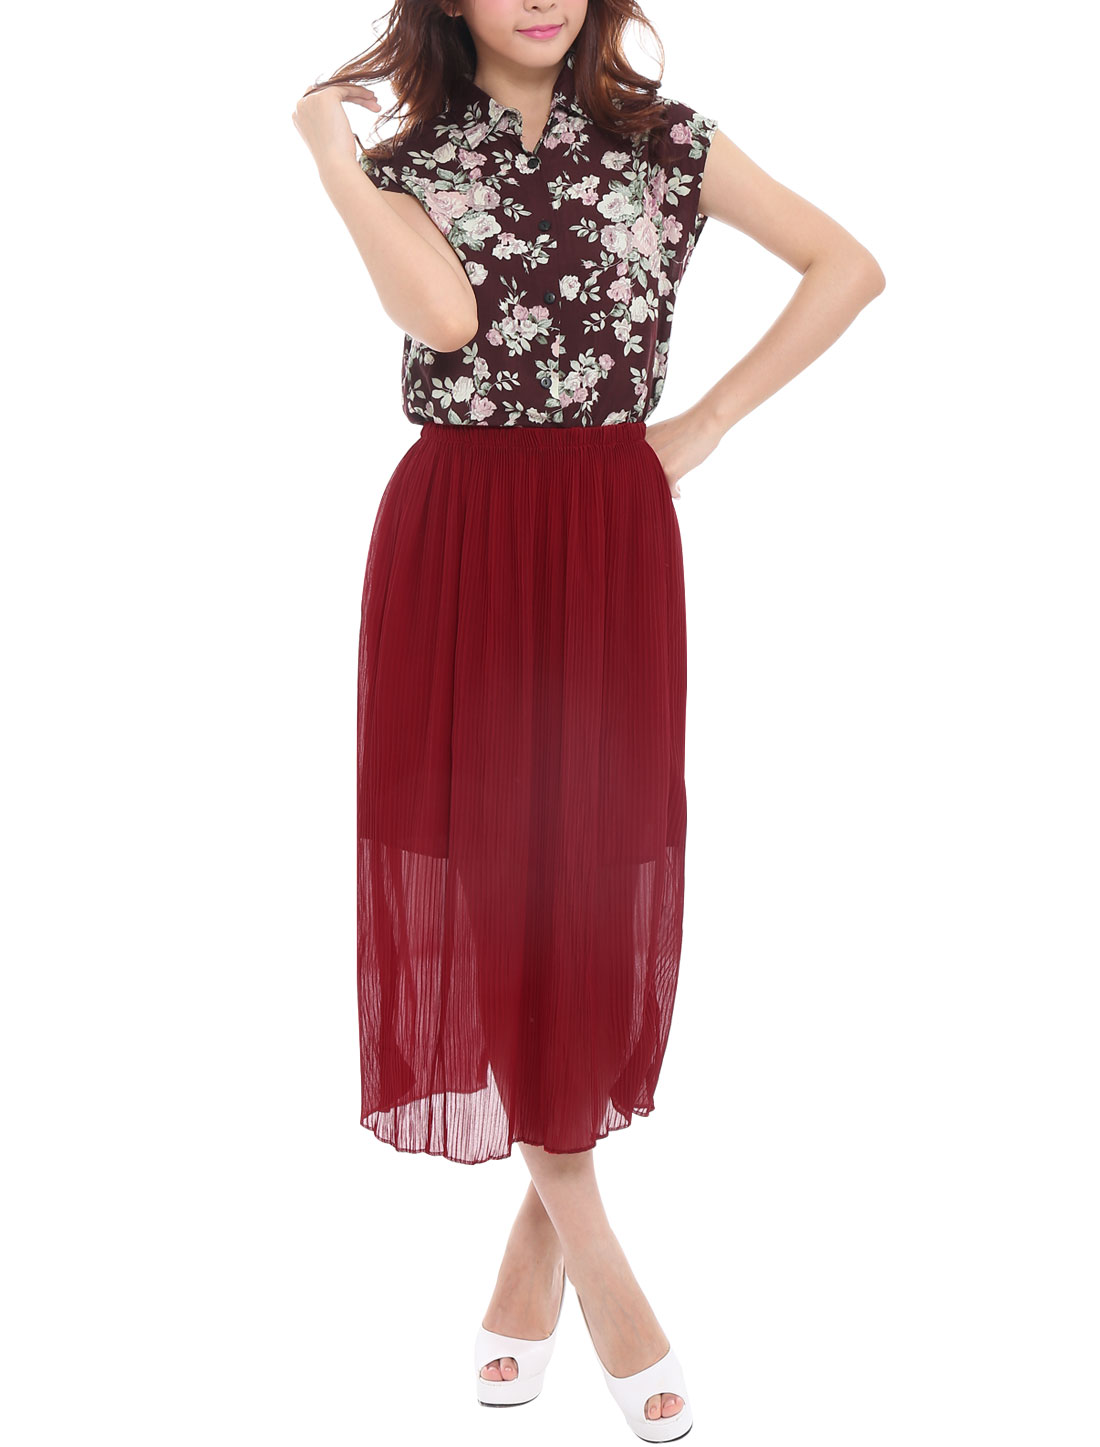 Lady Pleated Burgundy Skirt w Floral Prints Dark Burgundy Top XS